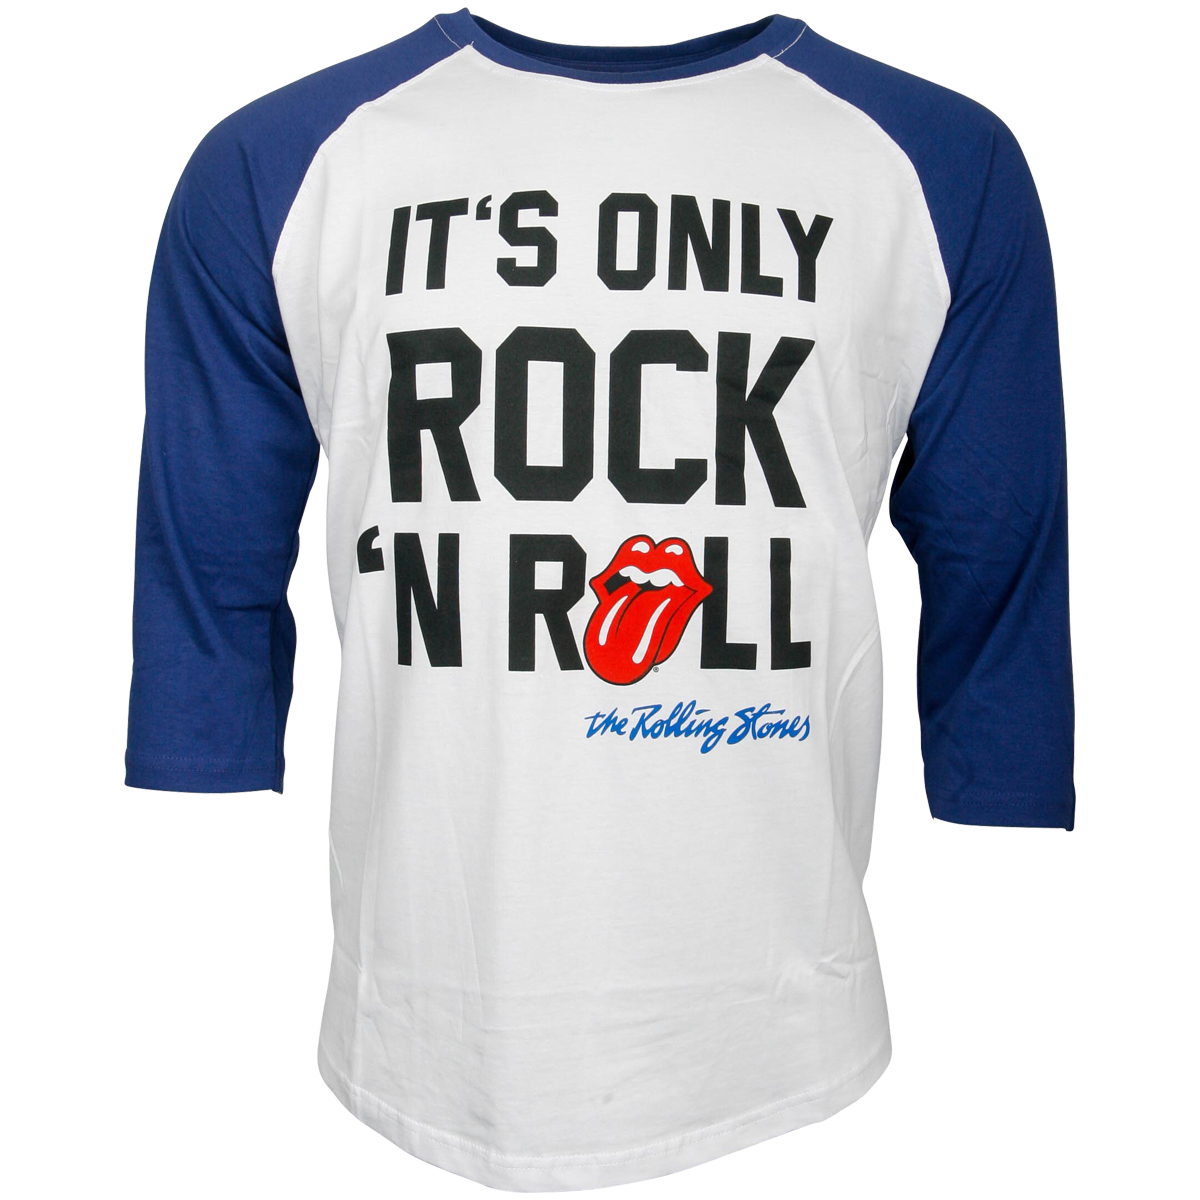 The Rolling Stones - Baseball Shirt It's Only Rock N Roll - multicolor